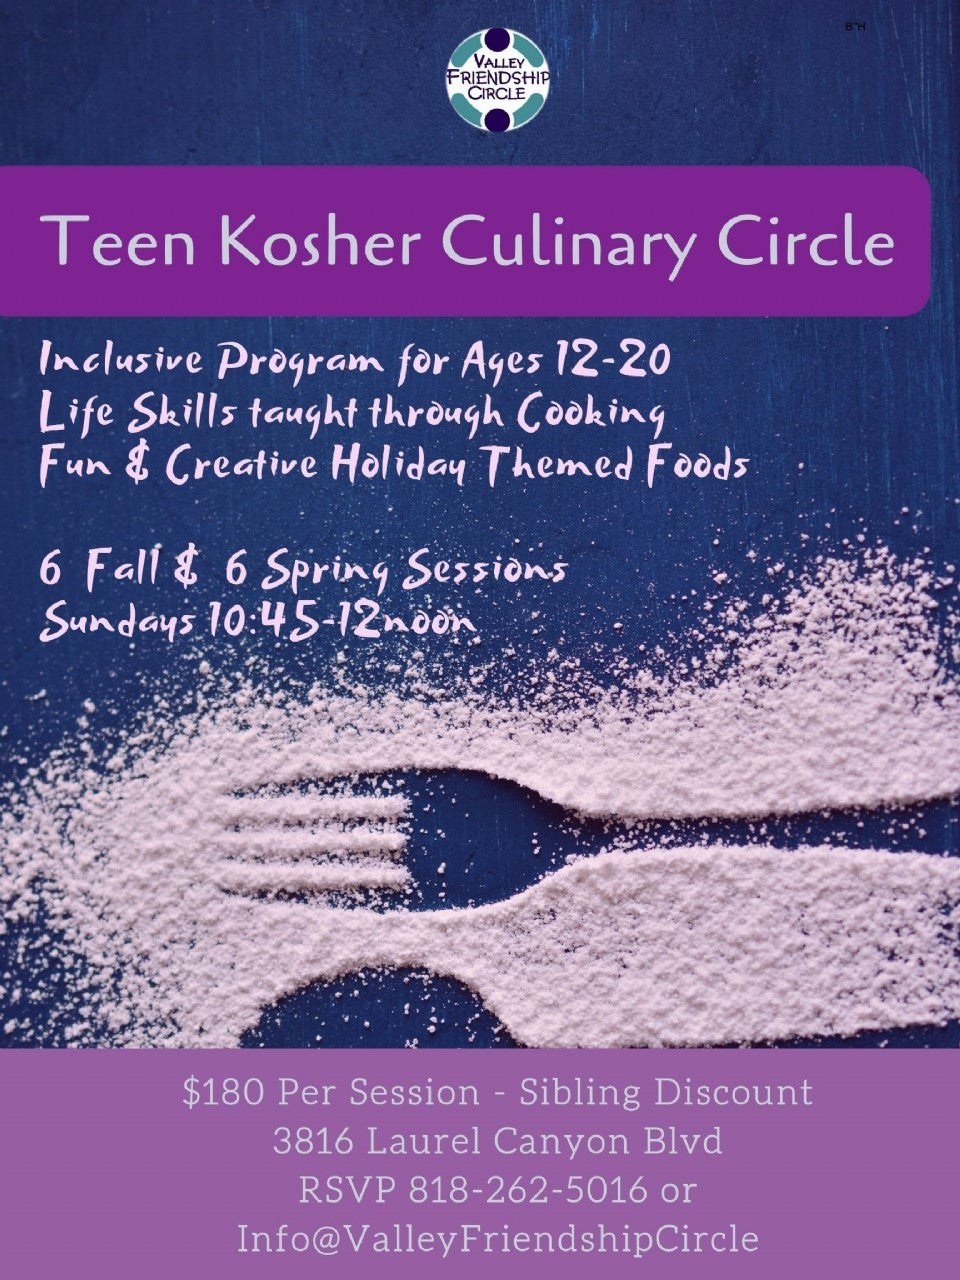 VFC Culinary Circle | HaMercaz | The Jewish Federation of Greater Los Angeles